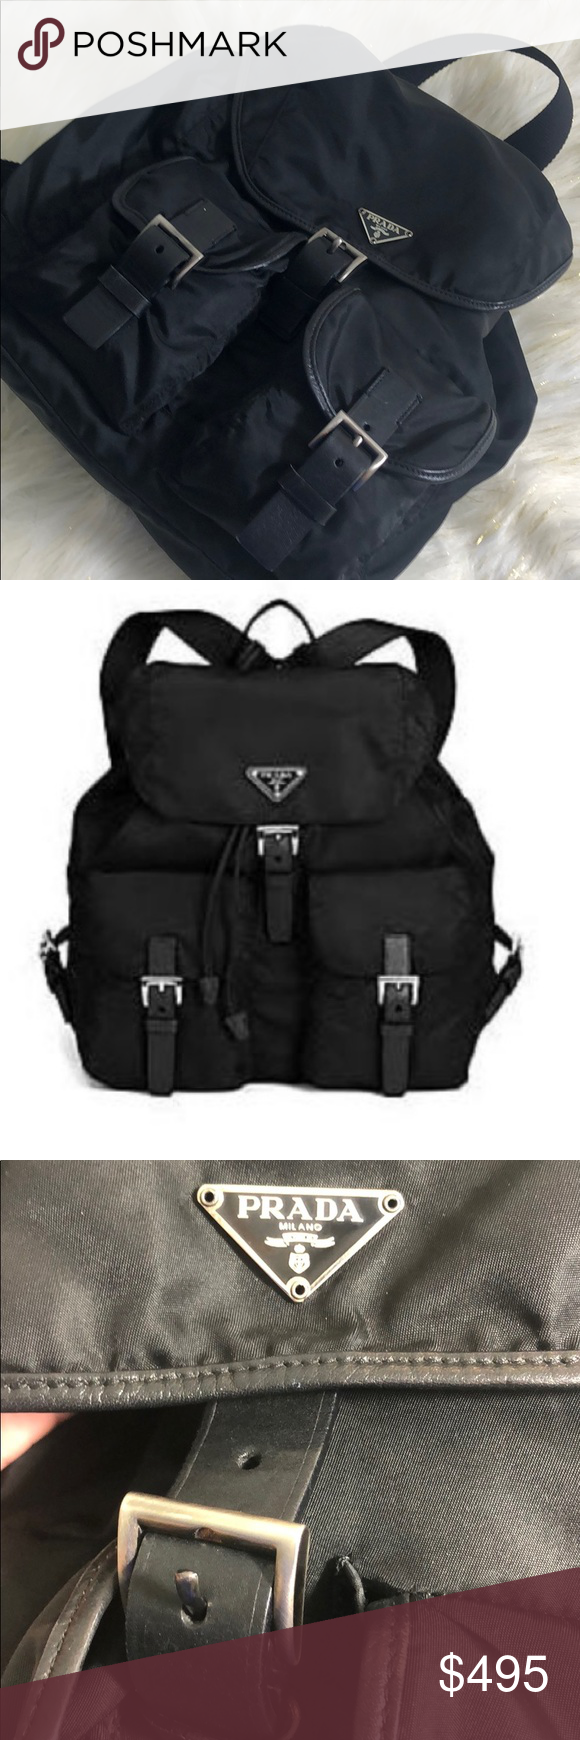 b2dea2c78676ee Large Prada Nylon Backpack Purse Authentic Tessuto Super cute Prada backpack  in almost like new condition